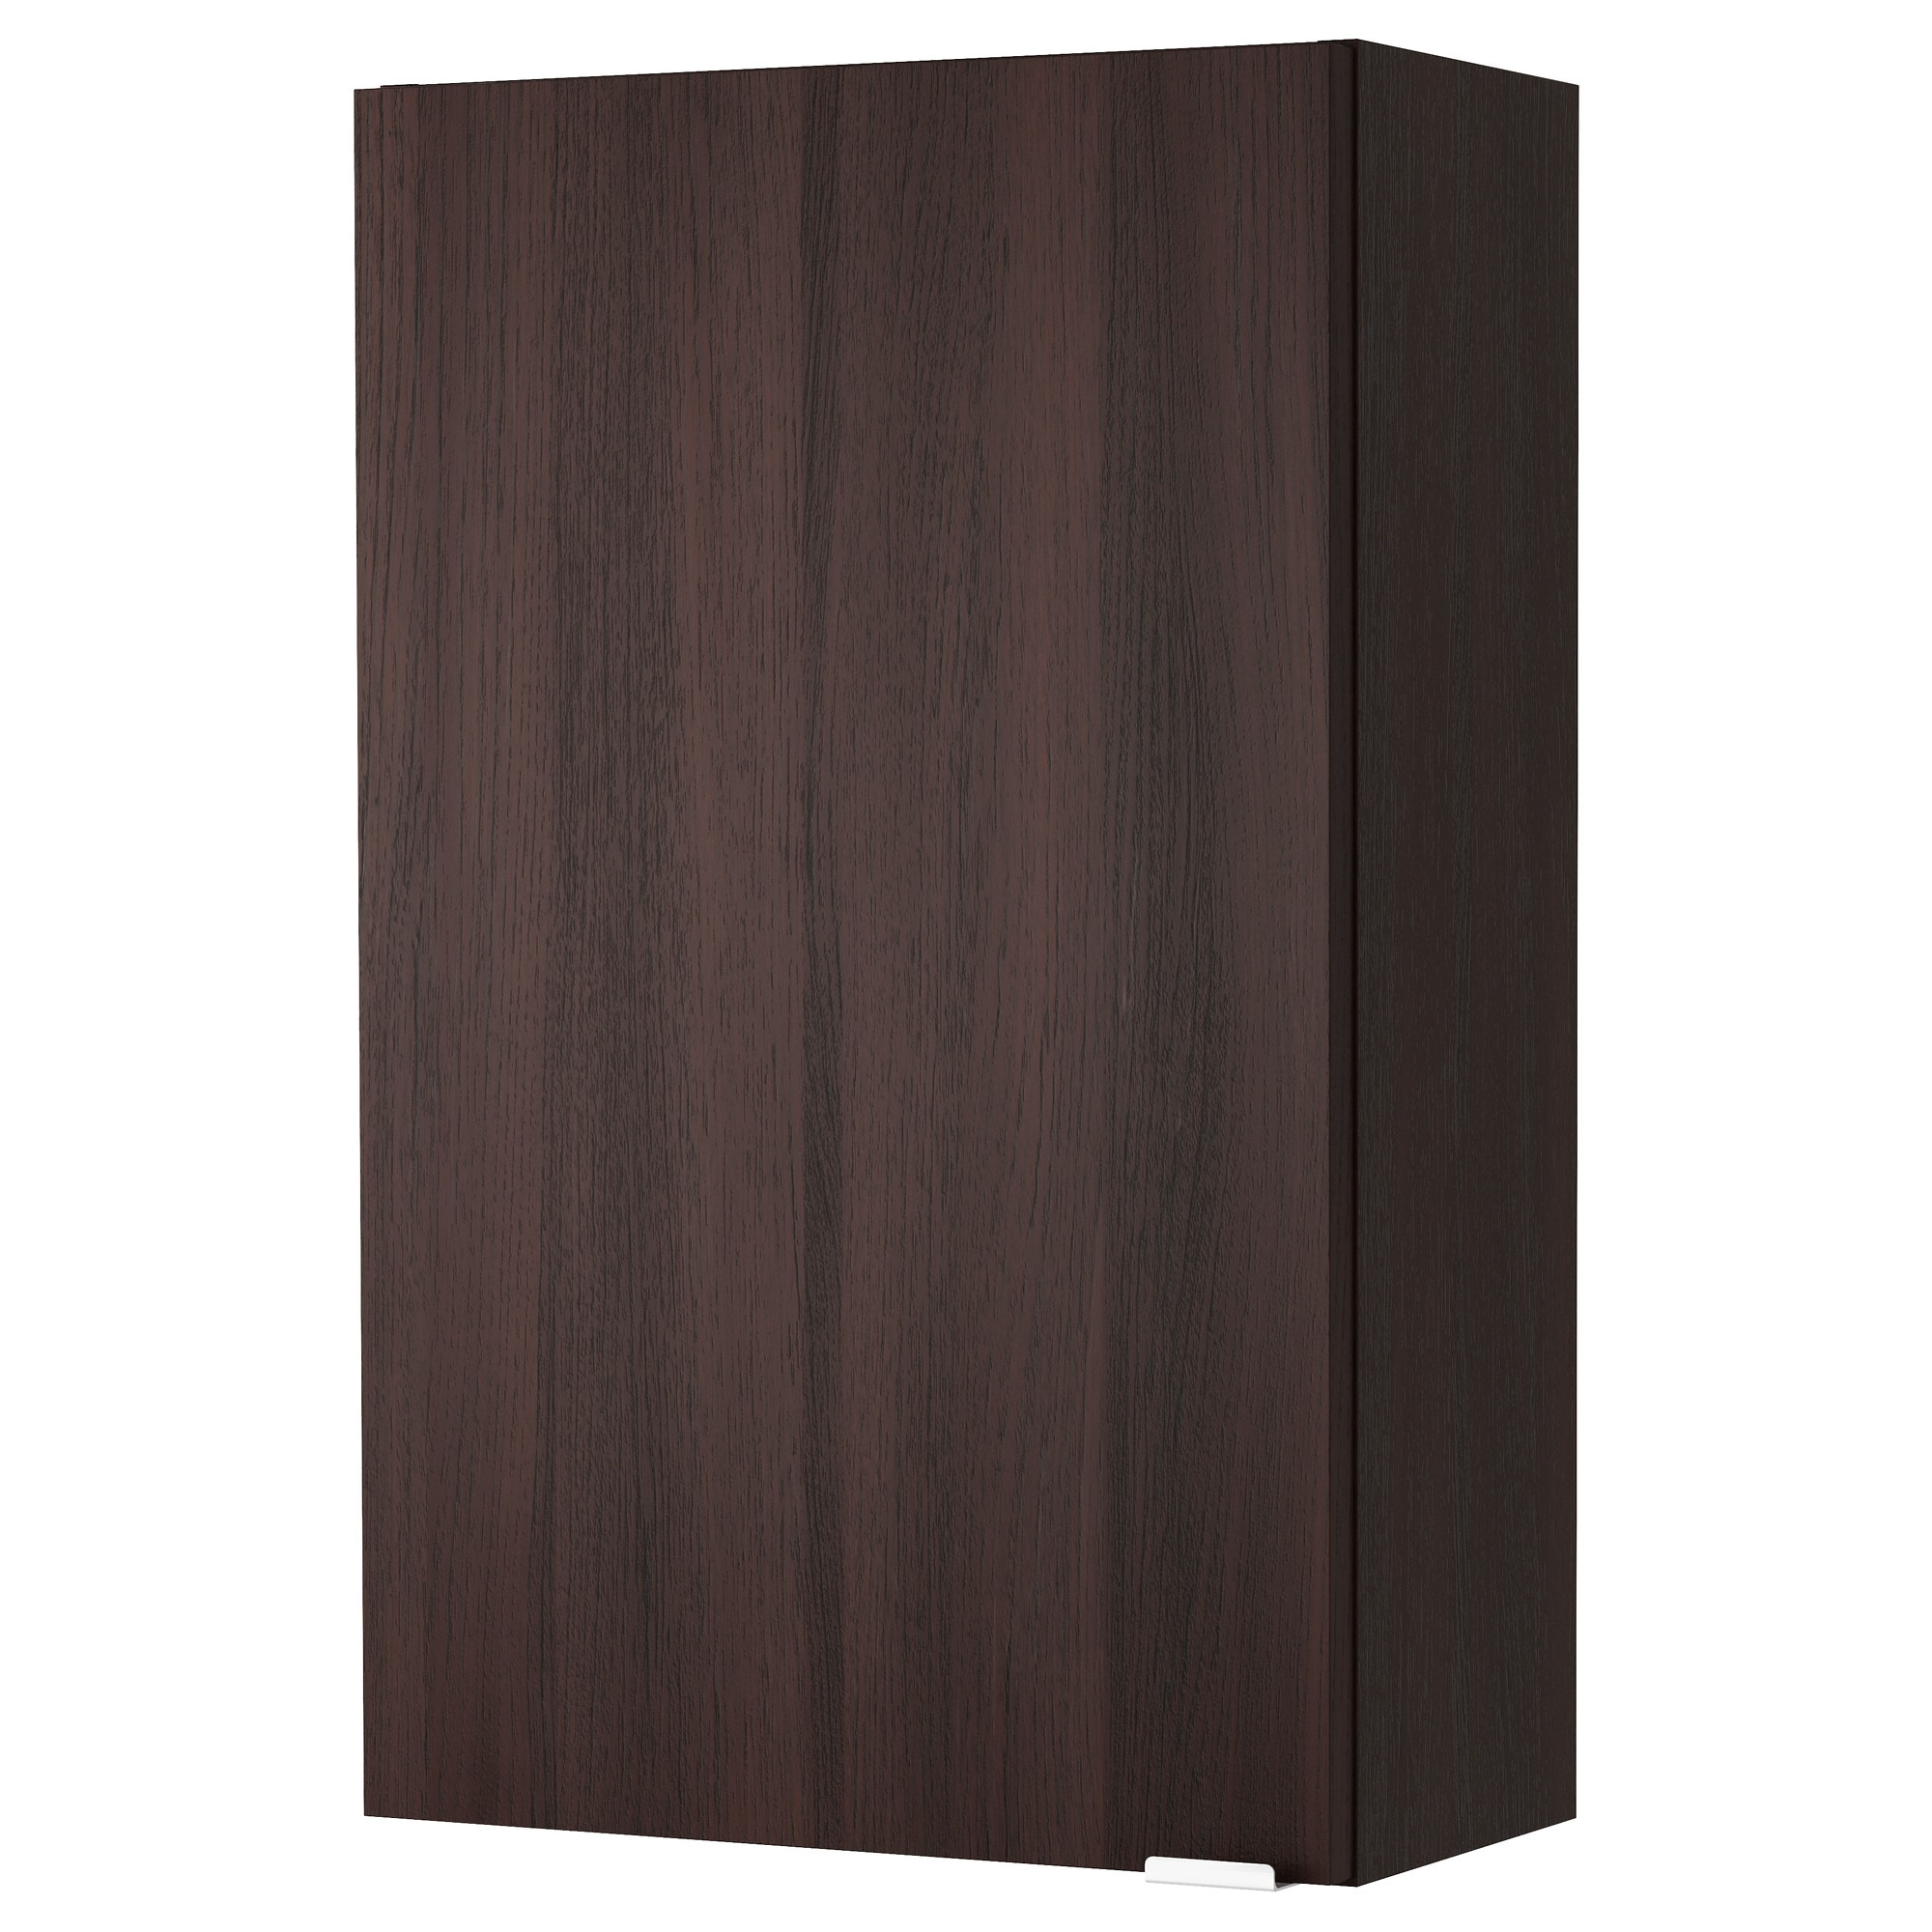 Wall Cupboards lillÅngen wall cabinet - black-brown - ikea